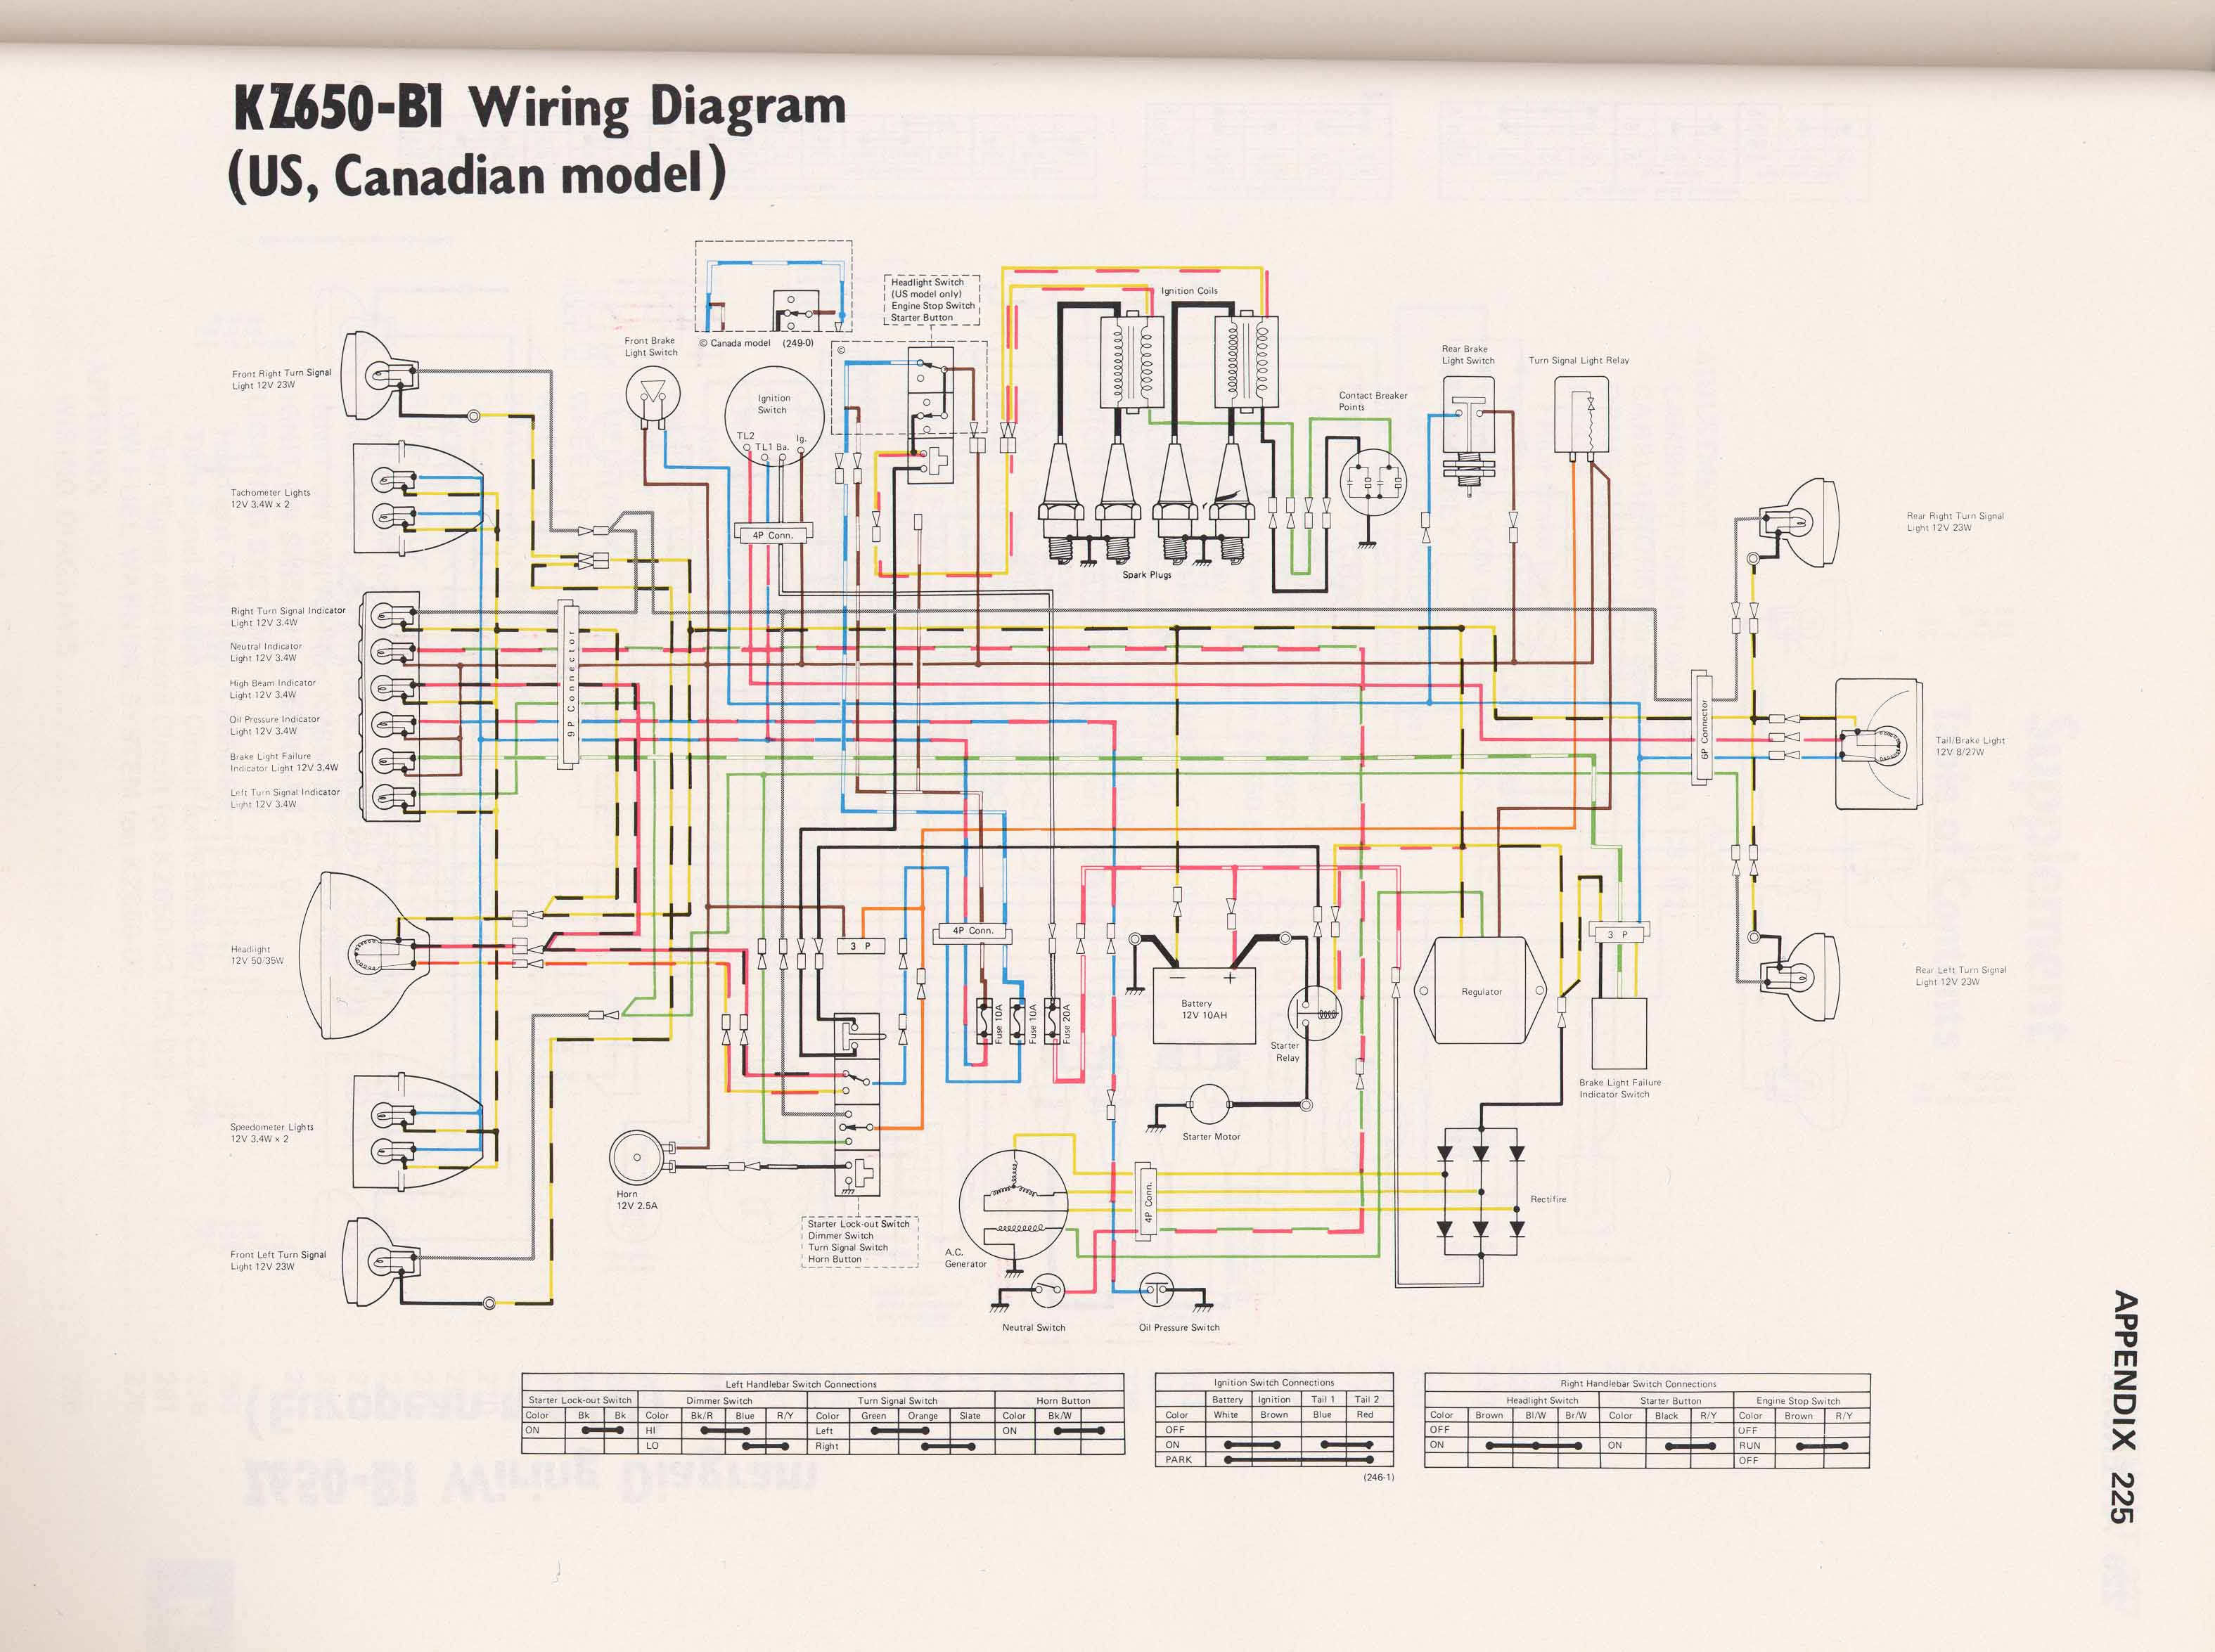 KZ650 B1 kawasaki kz650 wiring diagram vulcan 1500 wiring diagram \u2022 free 1981 kawasaki 440 ltd wiring diagram at n-0.co